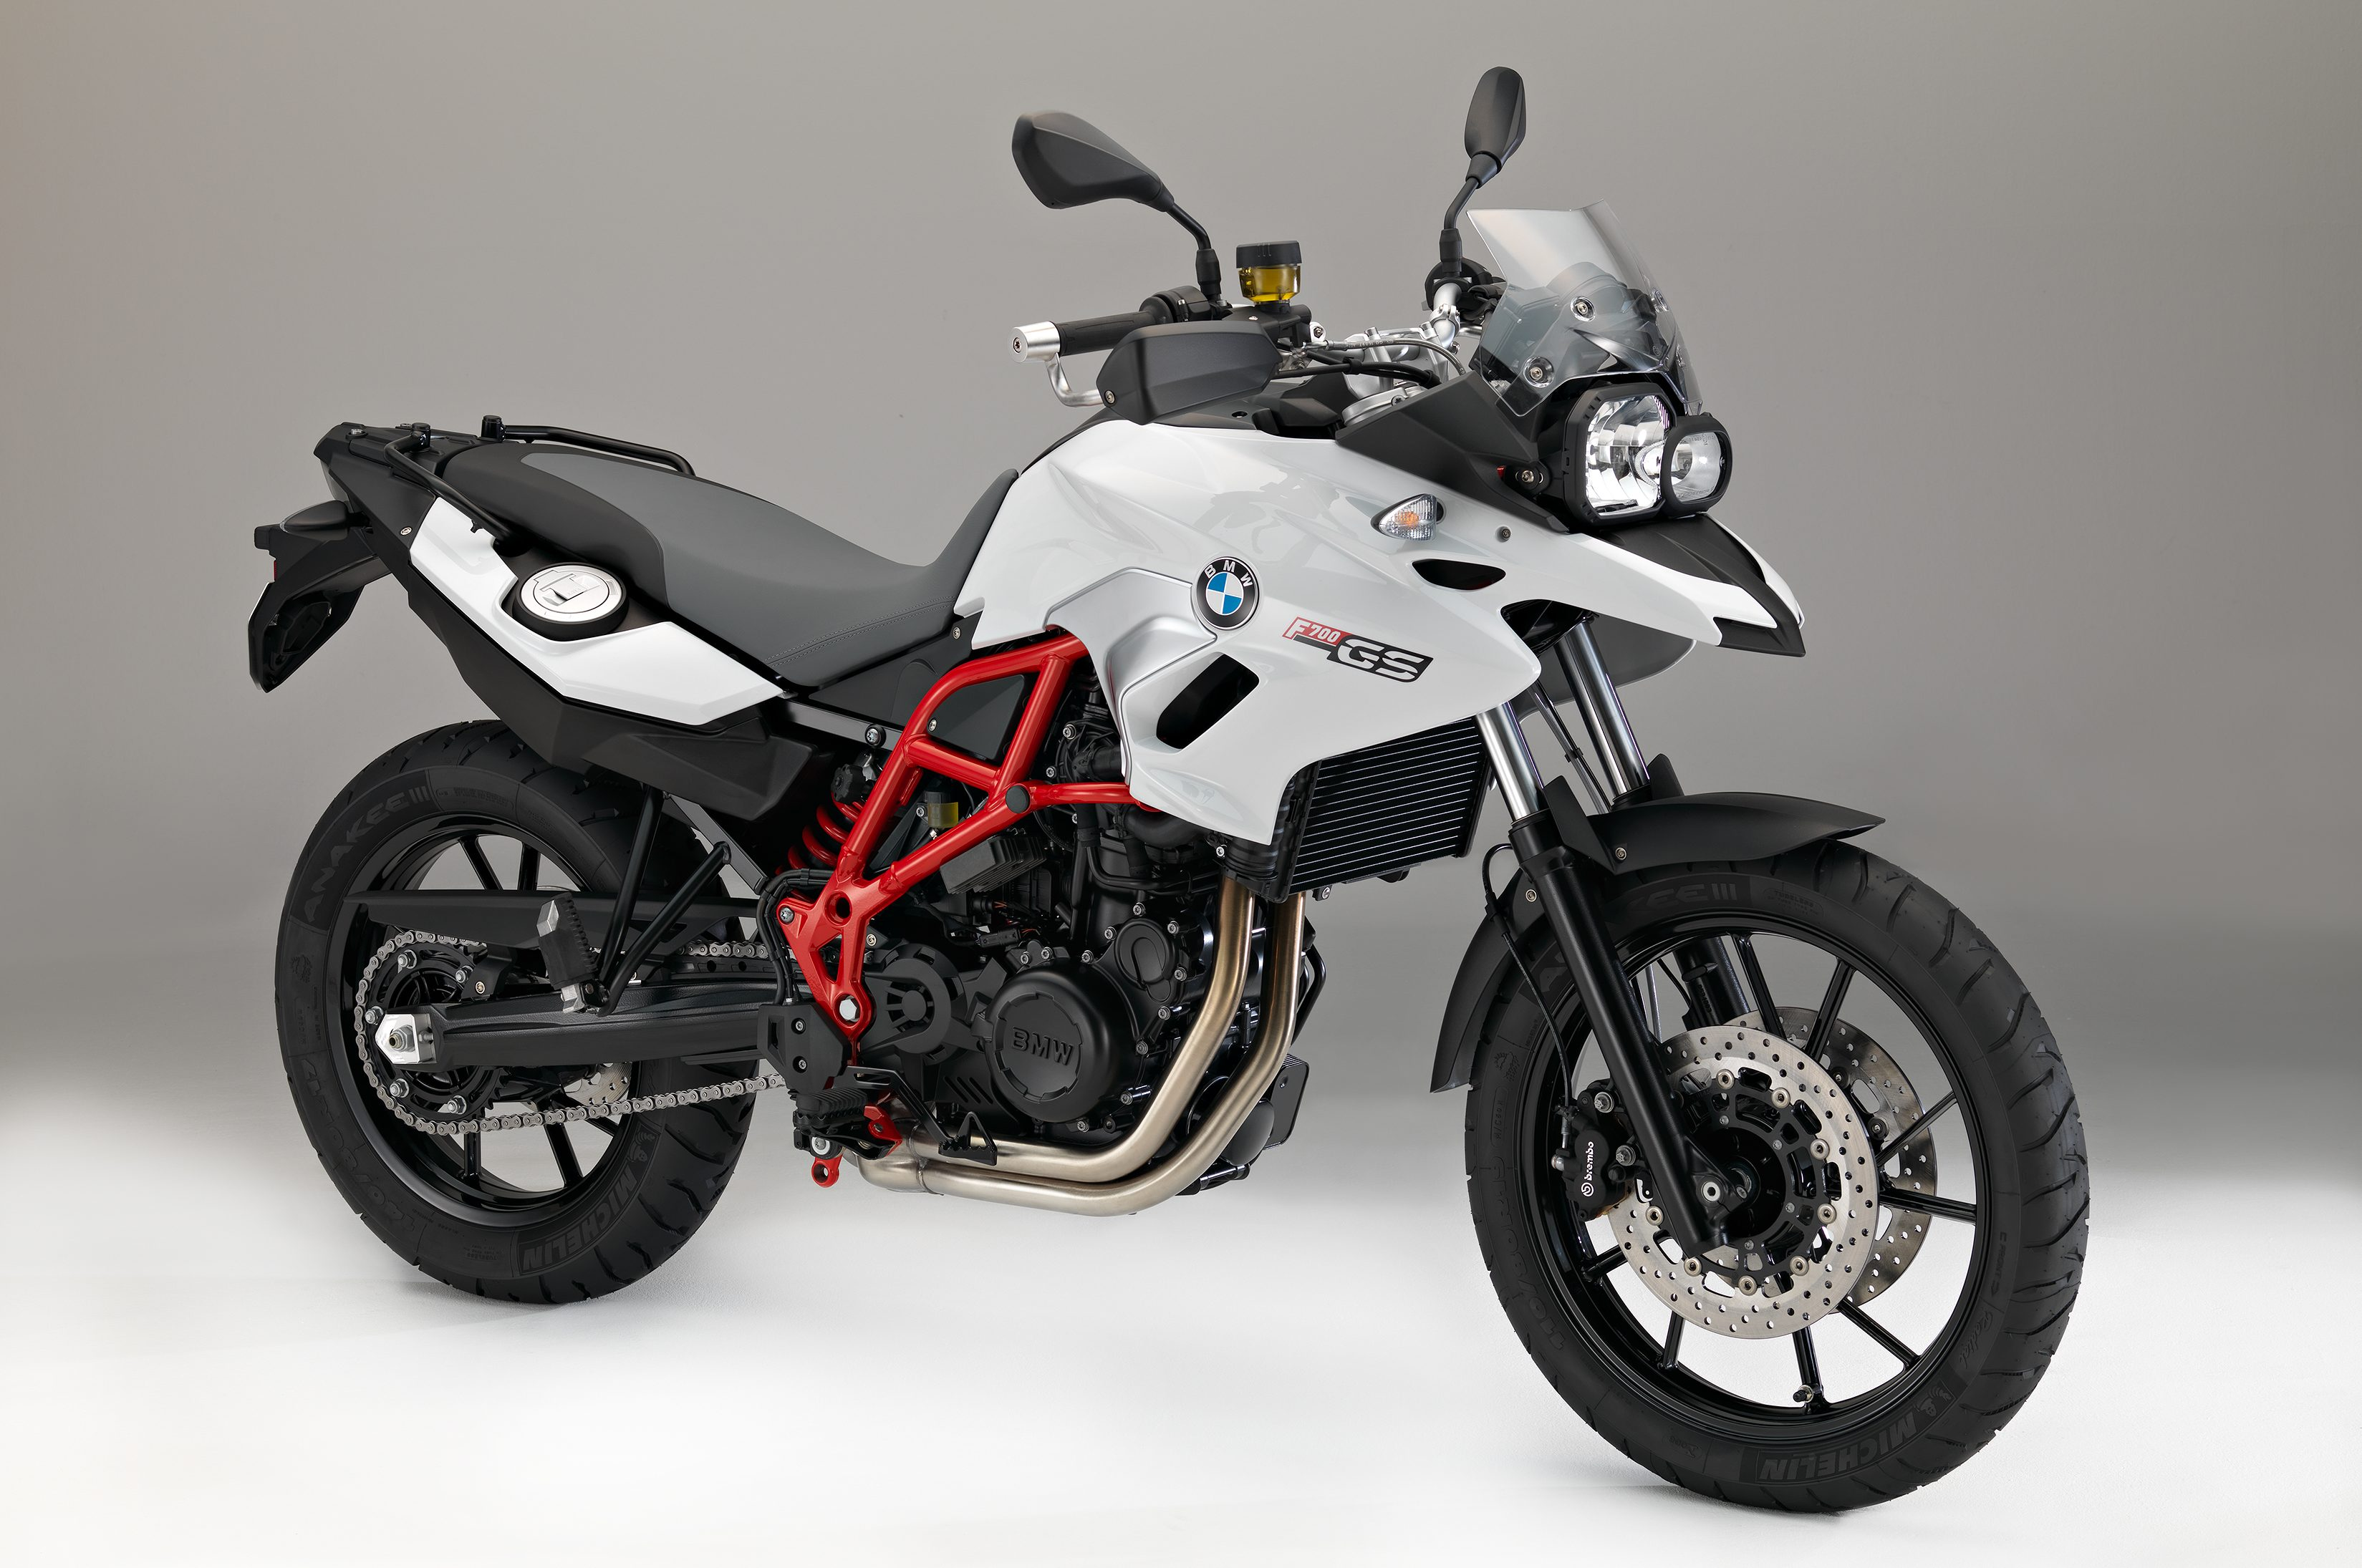 Bmw Motorrad Uk Confirms G310r Adventure Bike